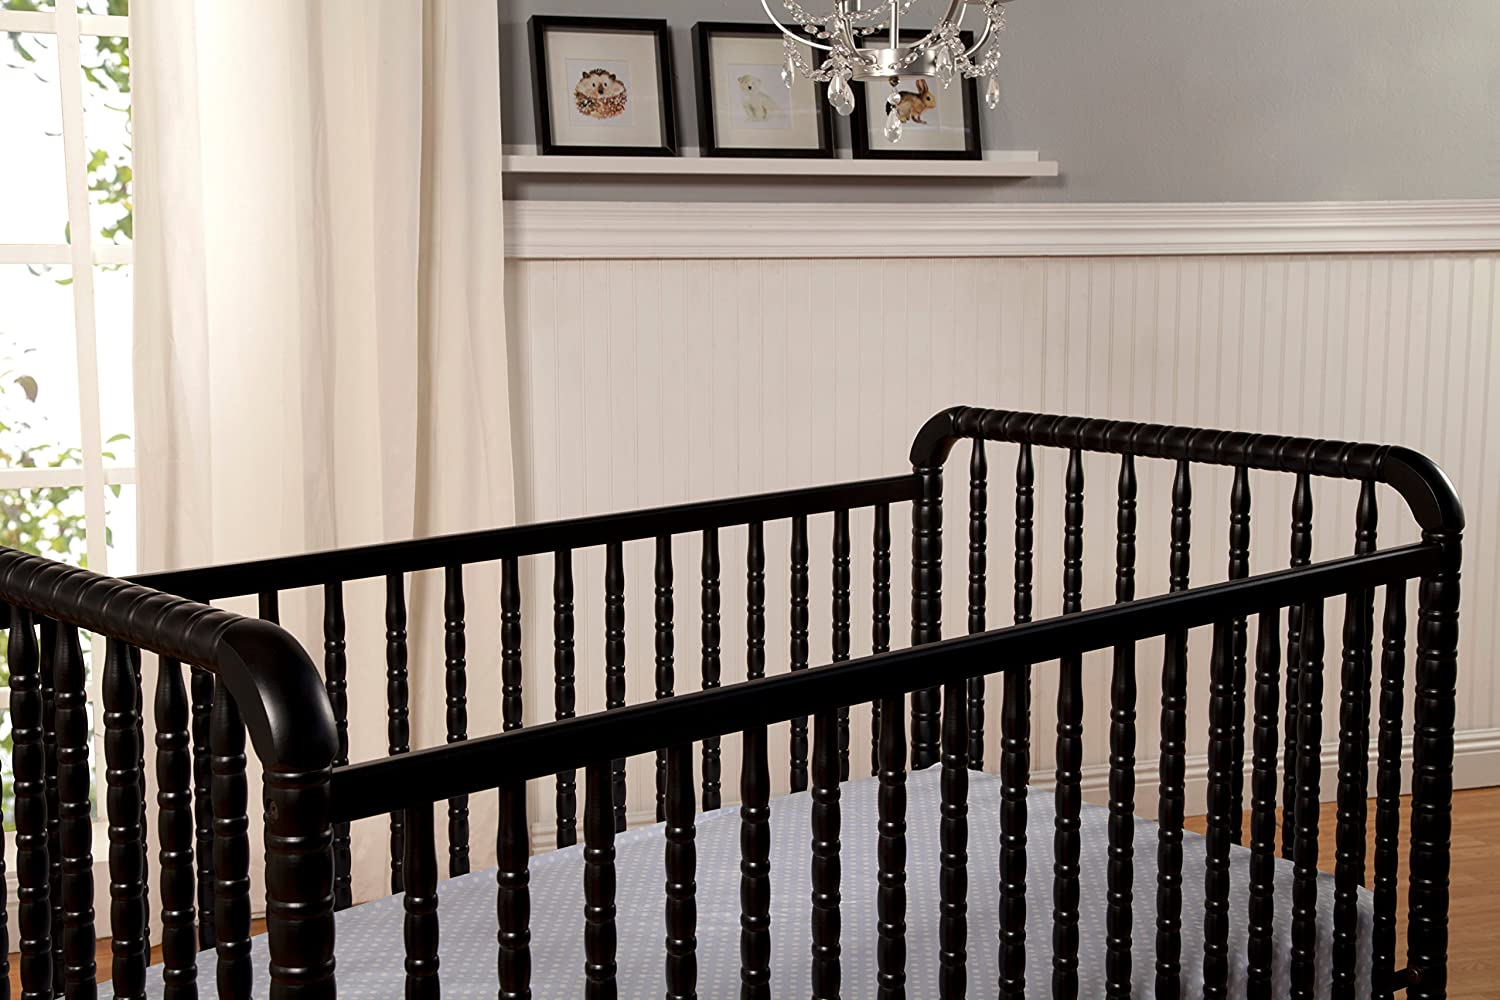 DaVinci Jenny Lind Stationary Crib with Toddler Bed Conversion Kit Lagoon